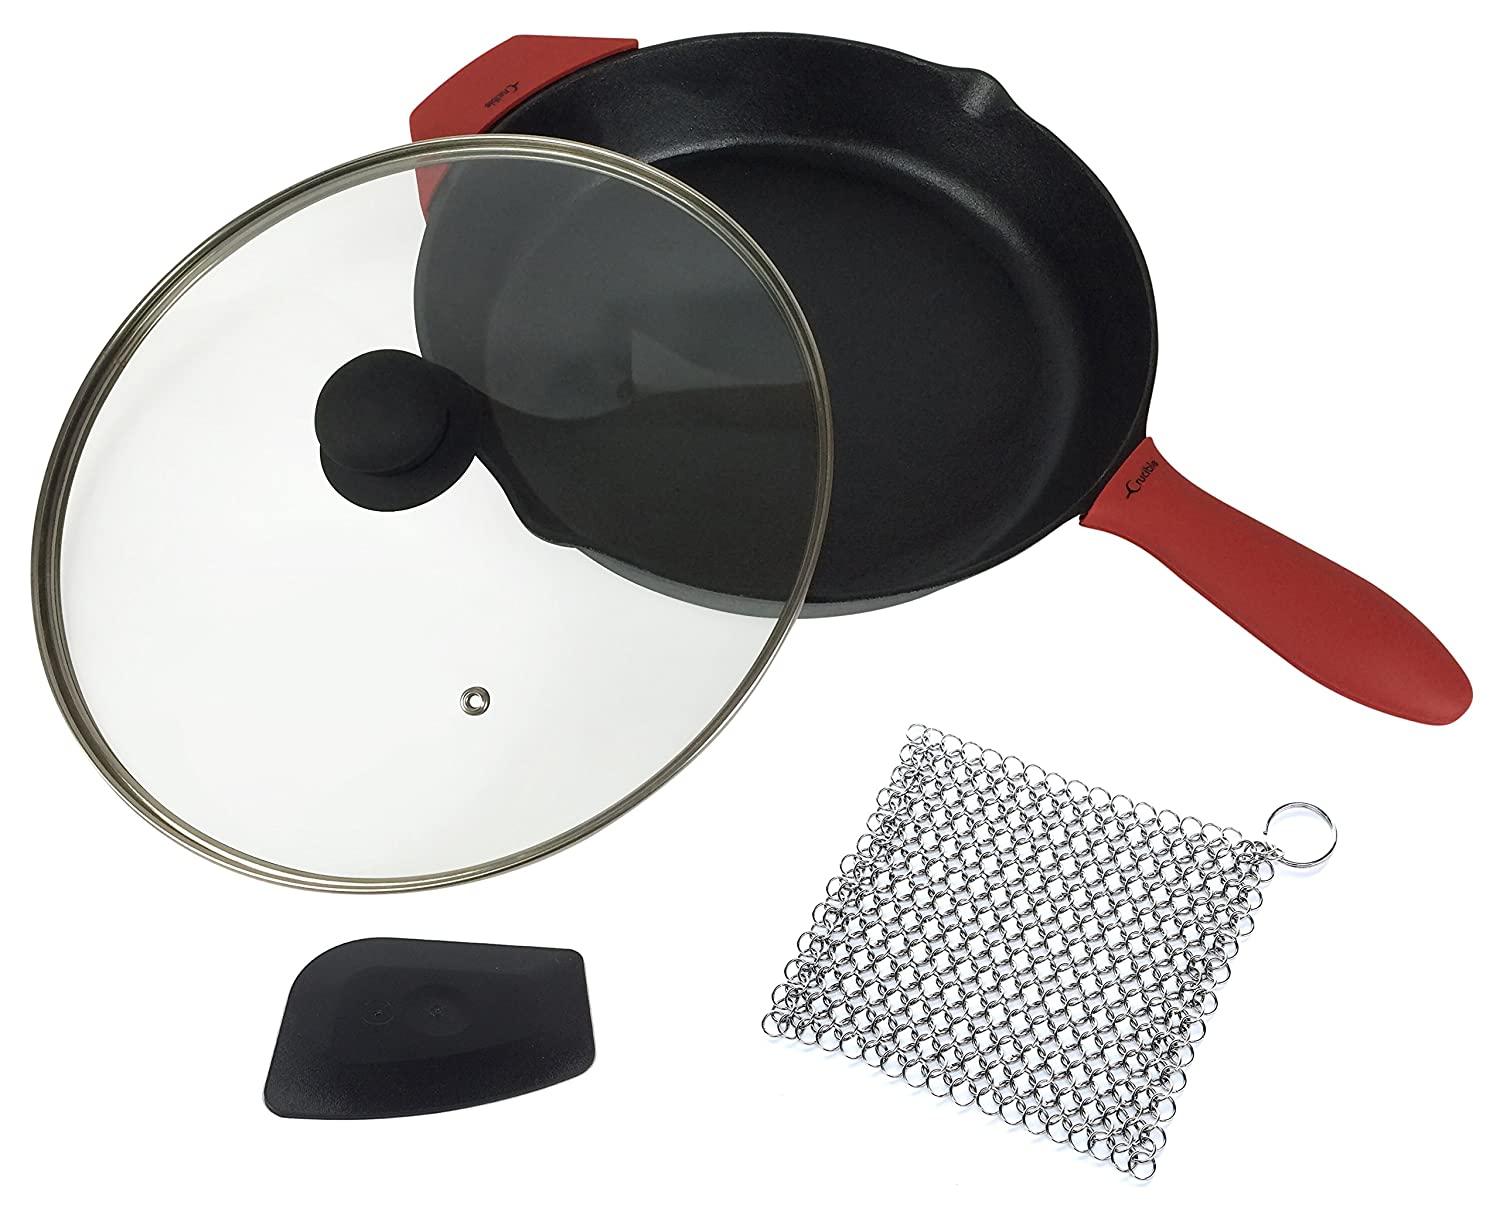 12-Inch Cast Iron Skillet Set (Pre-Seasoned), Including Large & Assist Silicone Hot Handle Holders, Glass Lid, Cast Iron Cleaner Chainmail Scrubber, Scraper | Indoor & Outdoor Use